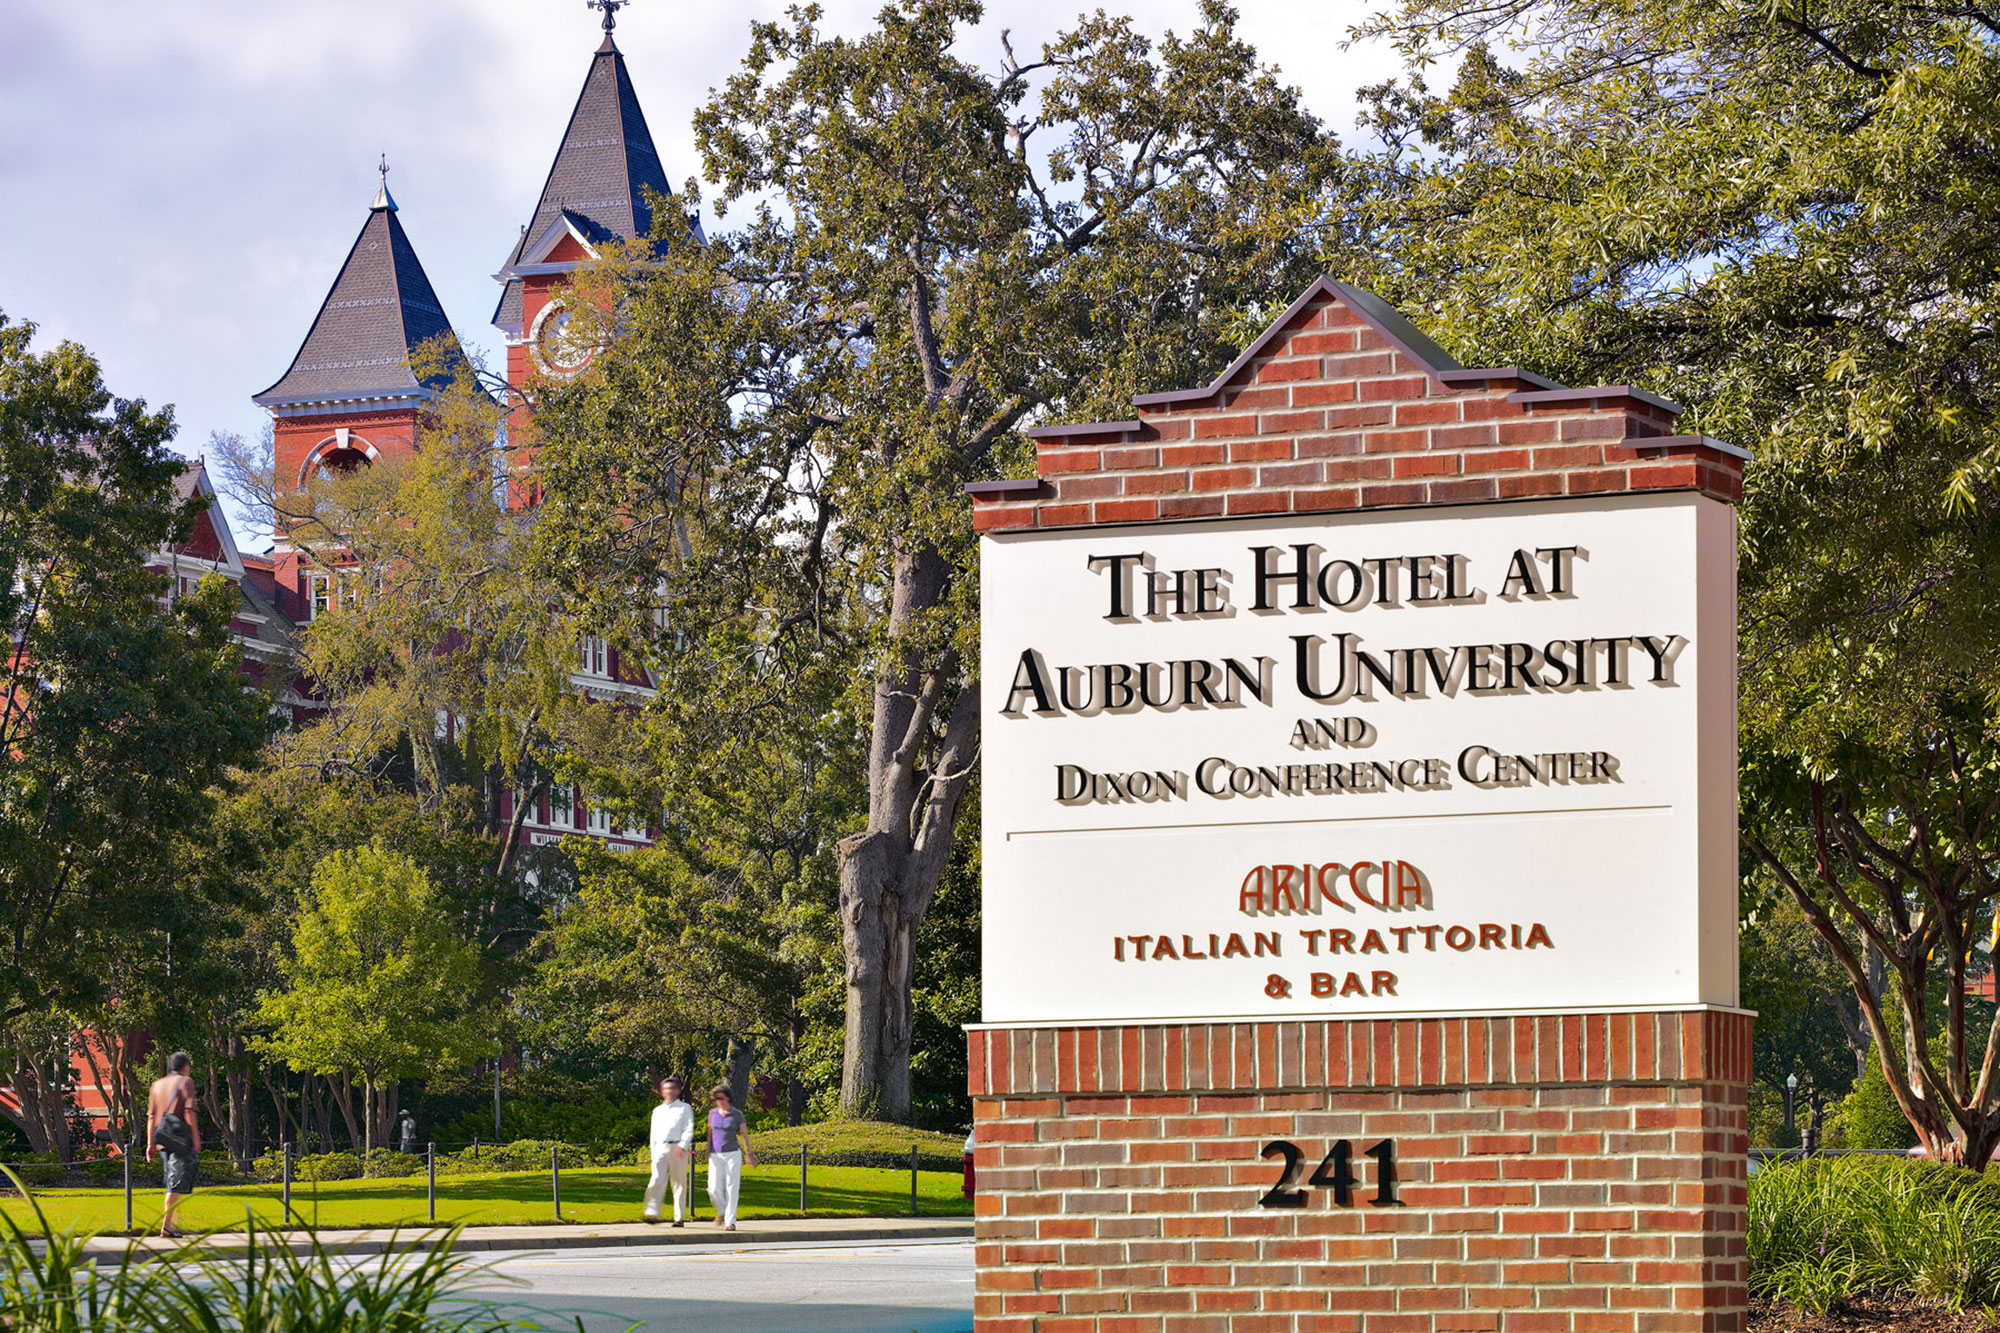 The Hotel at Auburn University, Auburn, AL